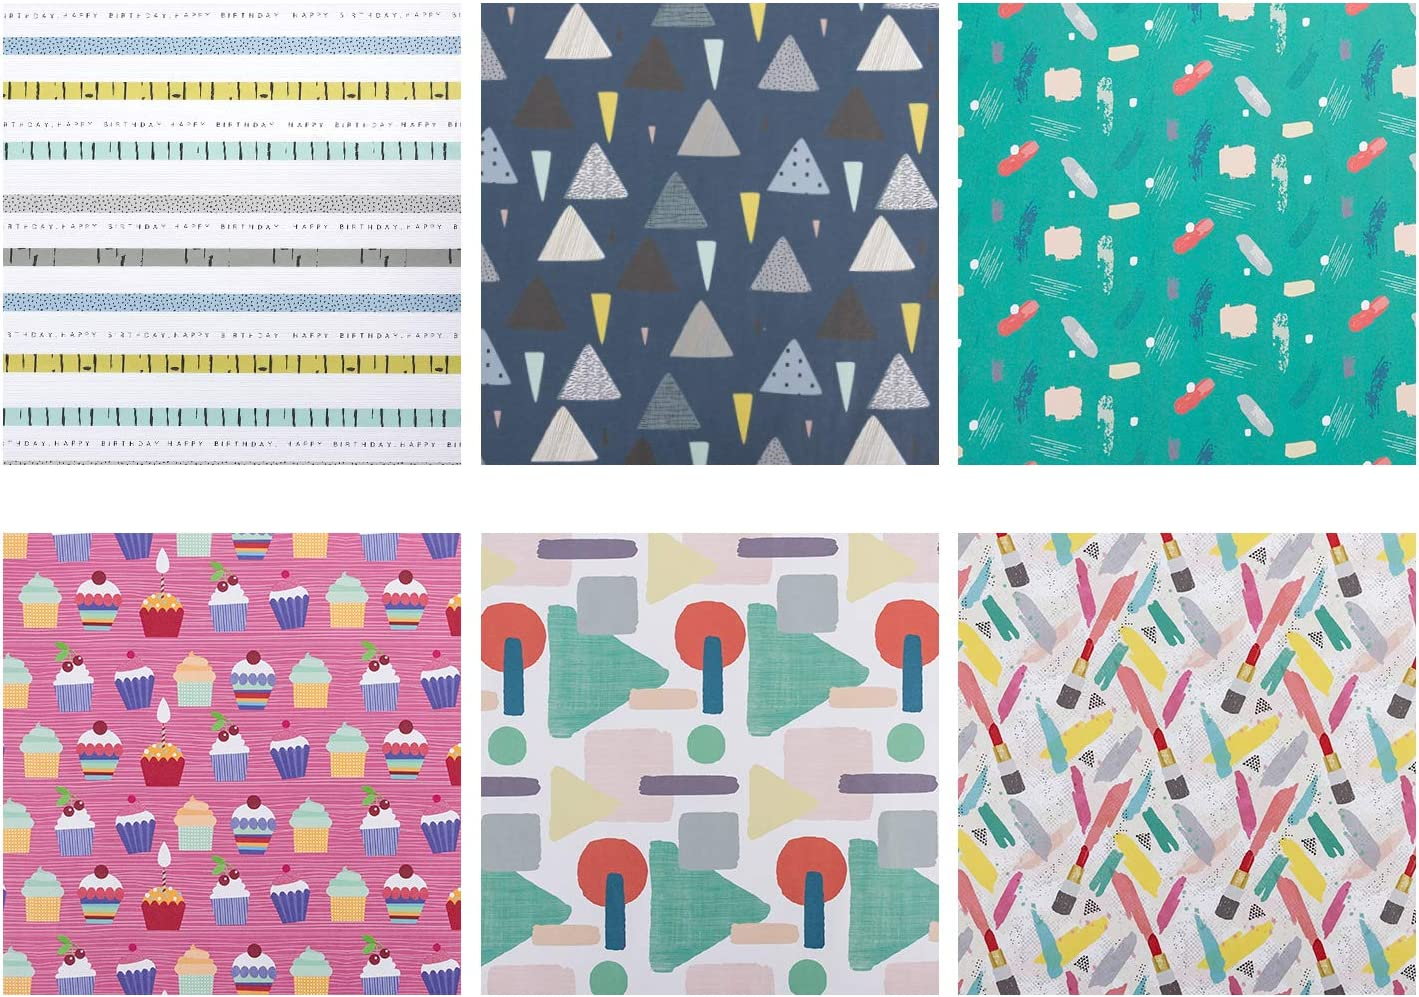 Herts RUSPEPA Gift Wrapping Paper Sheets 6 Folded Sheets-50CM X70CM Dots Stripe Colorful Wrapping Paper